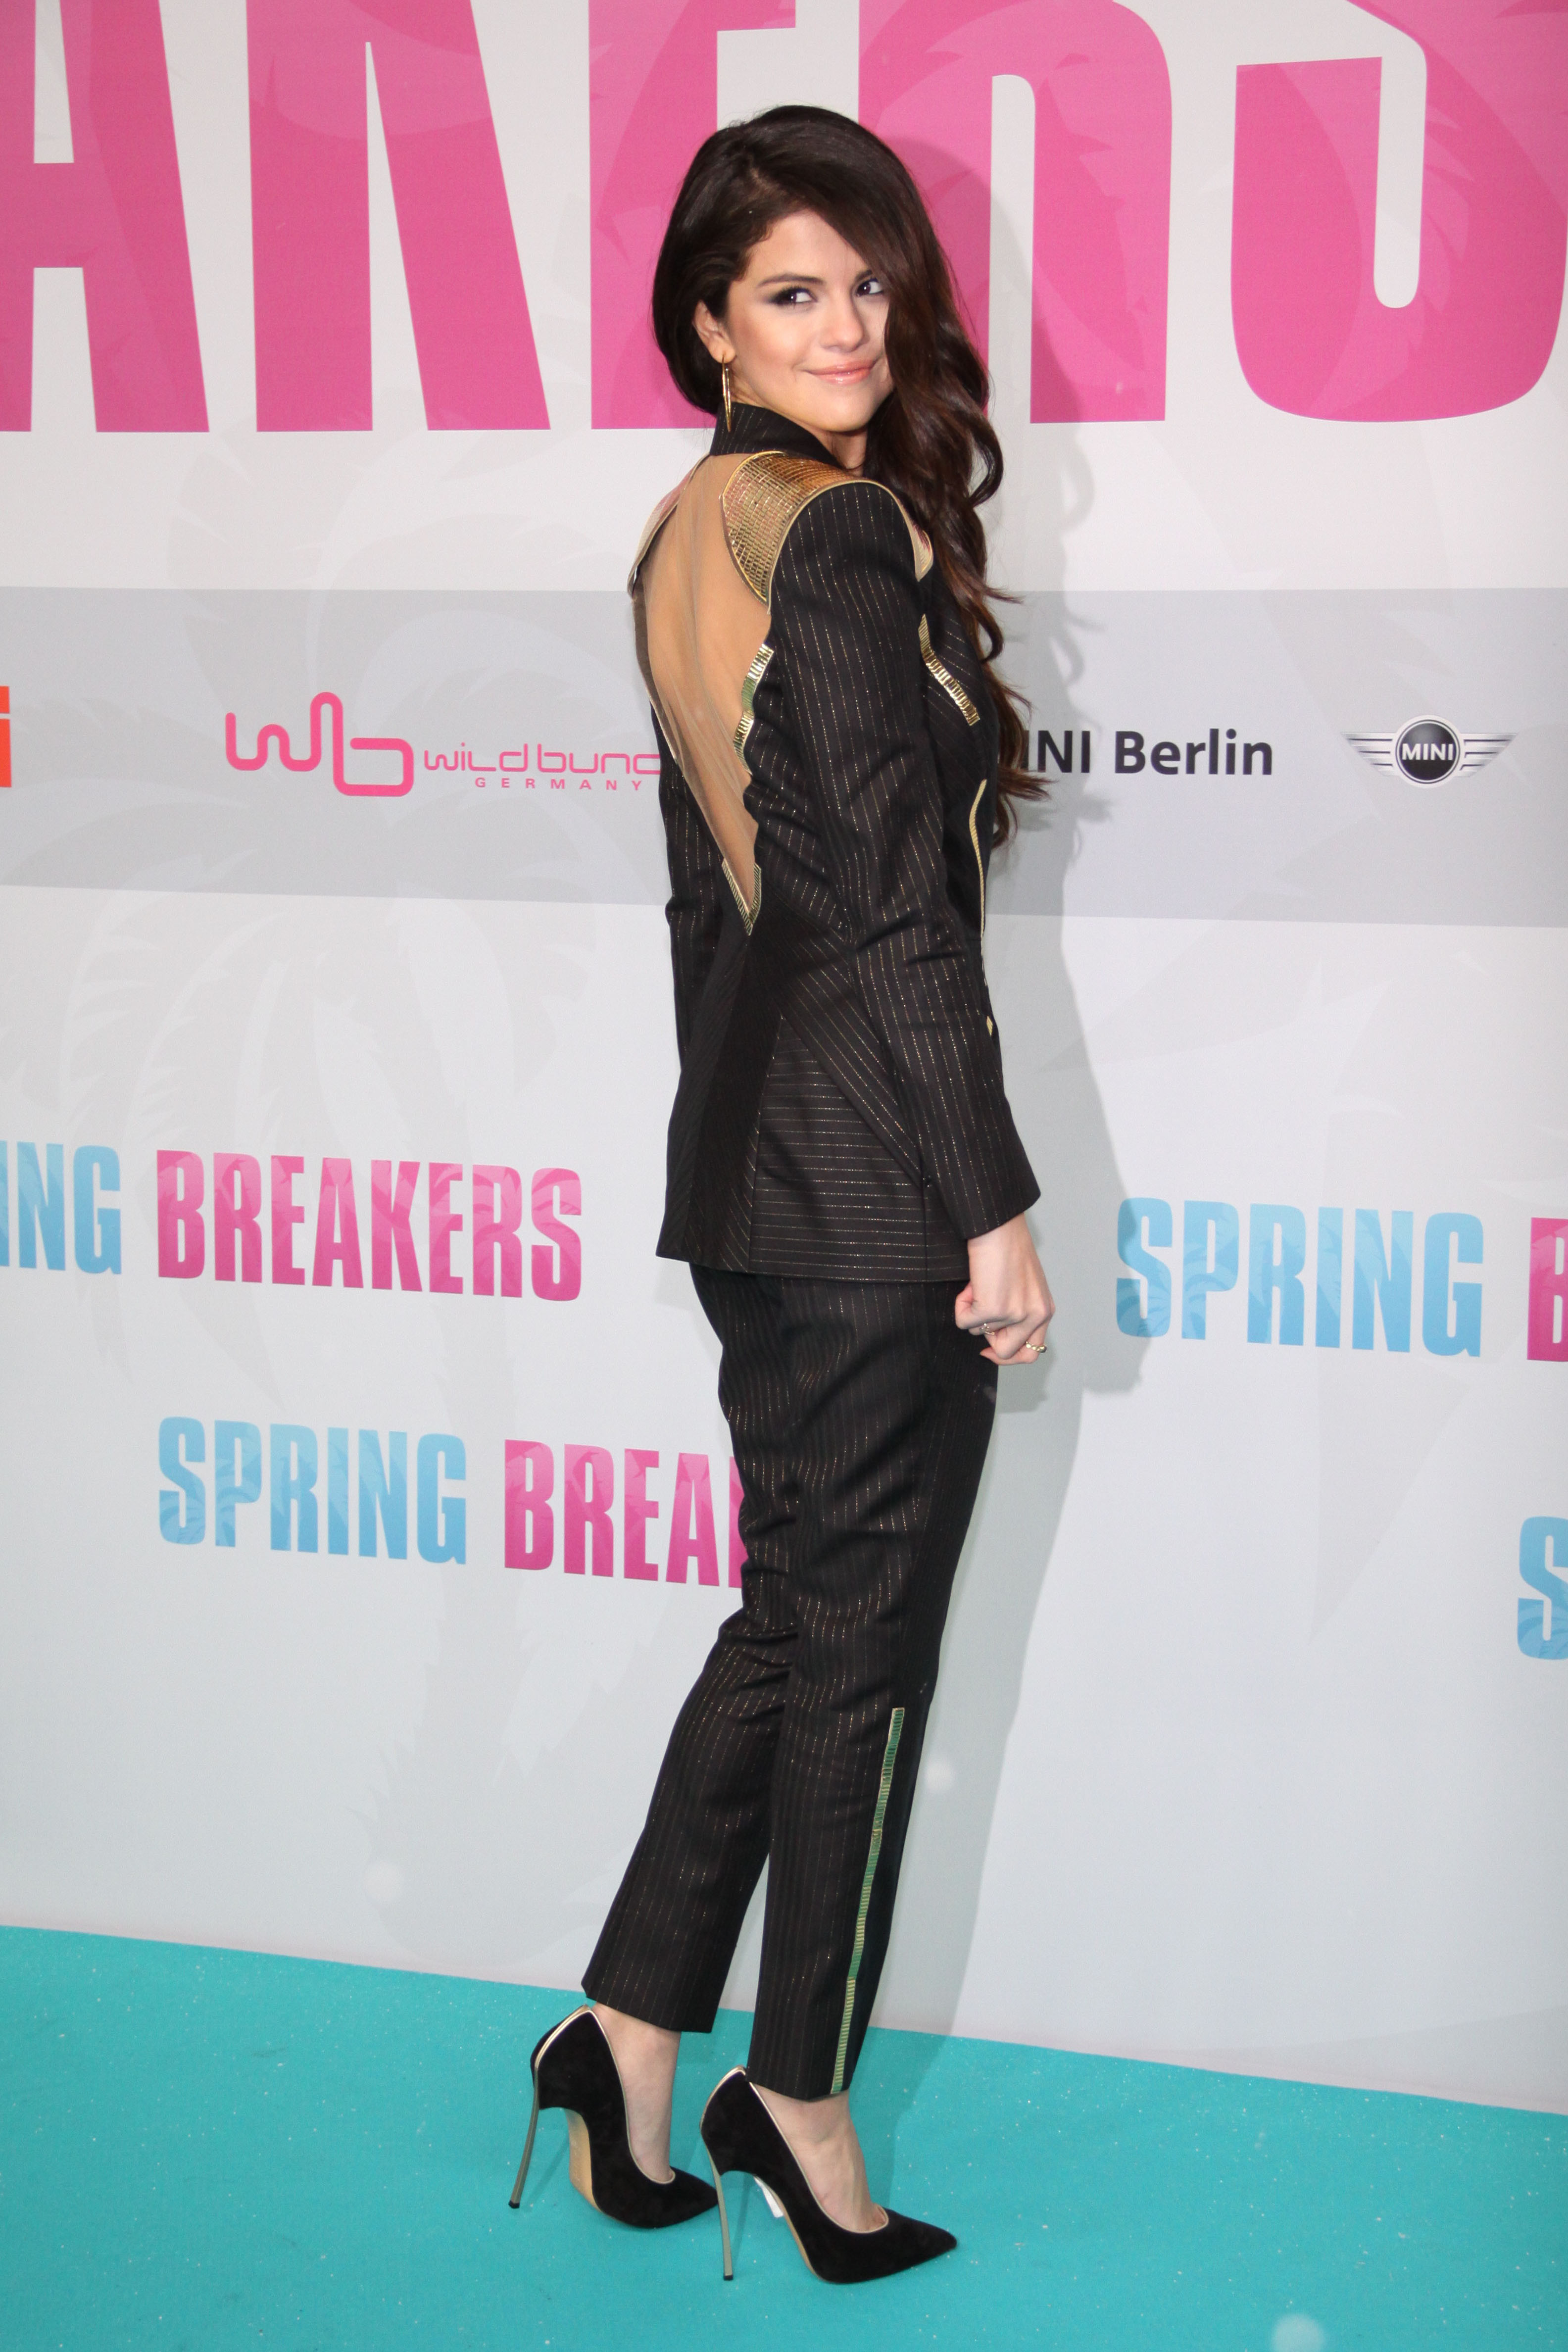 Check out the unexpected open back on Selena's suit.